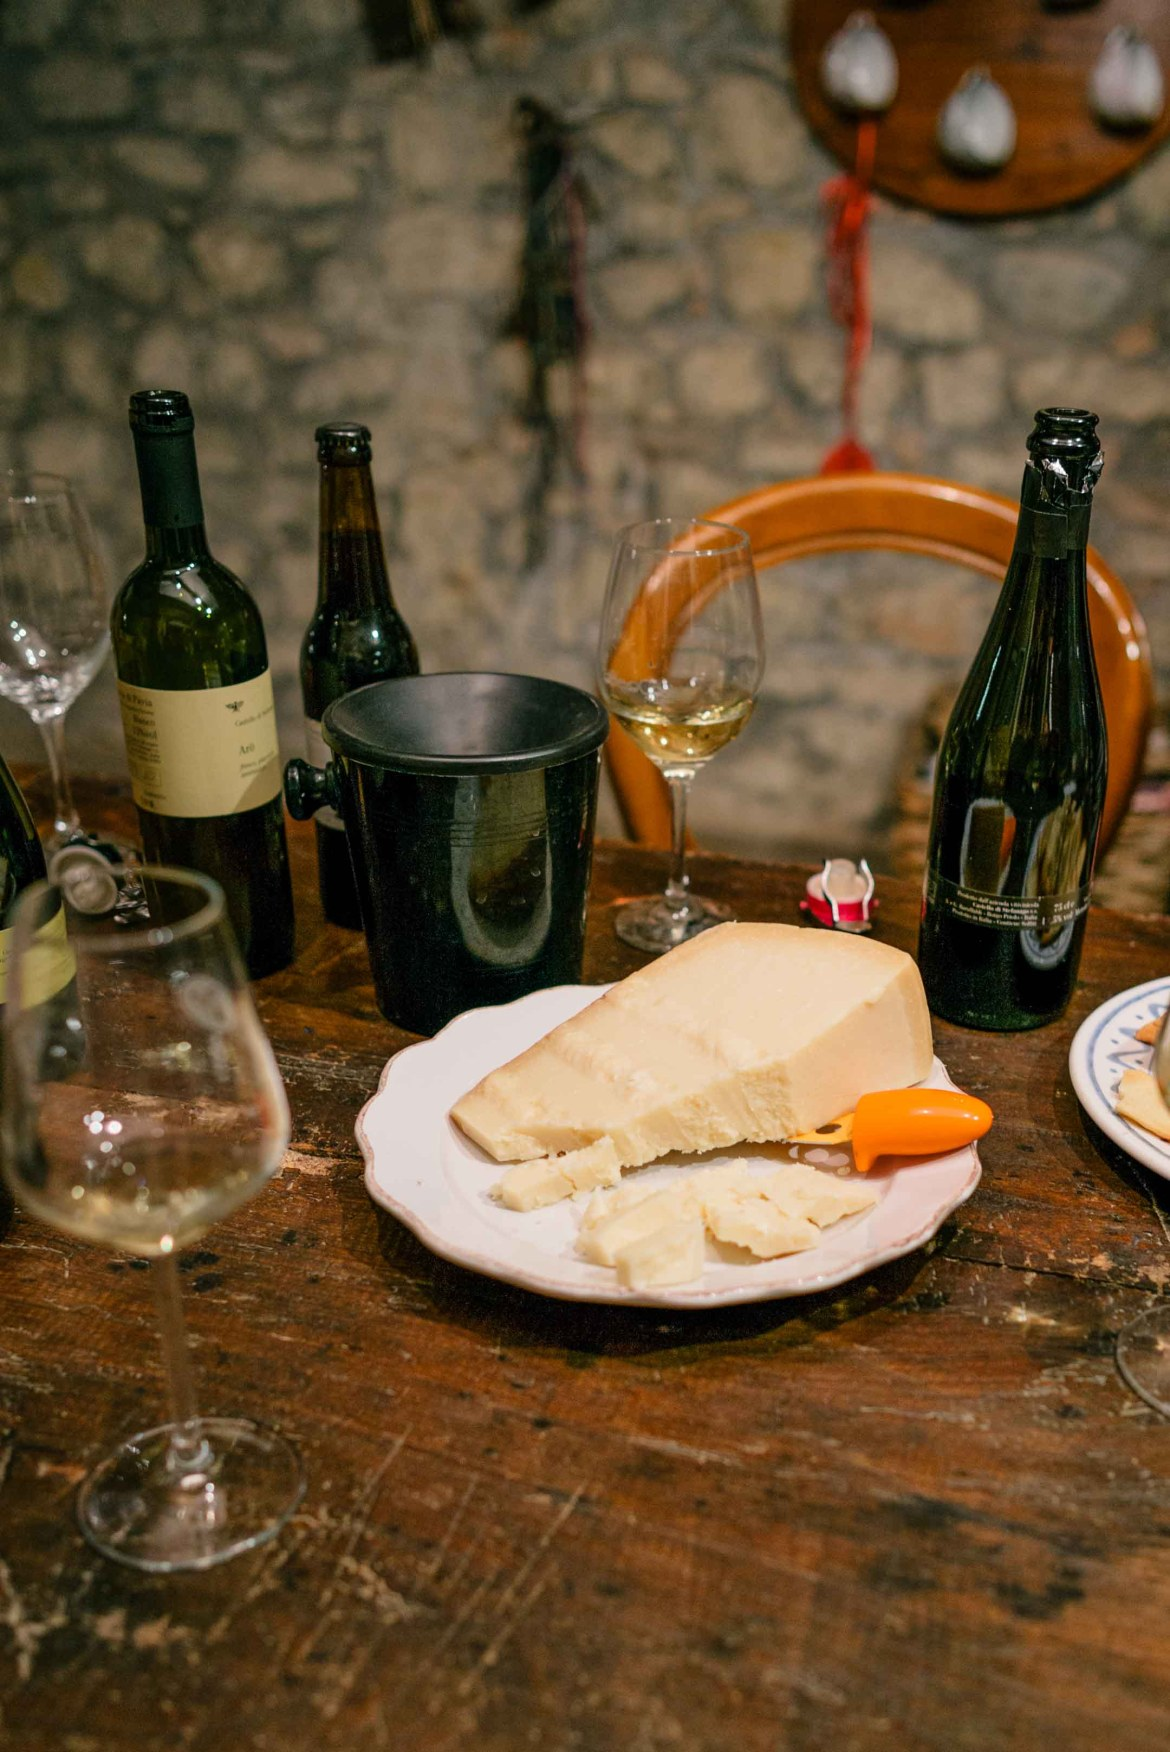 The Taste Edit, culinary photographers, recommends visiting this magical winery in northern Italy. Castello di Stefanago is near the town of Pavia in Lombardy. Winemaker and owner Giacomo Baruffaldi gives us a tour of the winery where they make Baruffaldi natural wines. Tasting wine with their family.